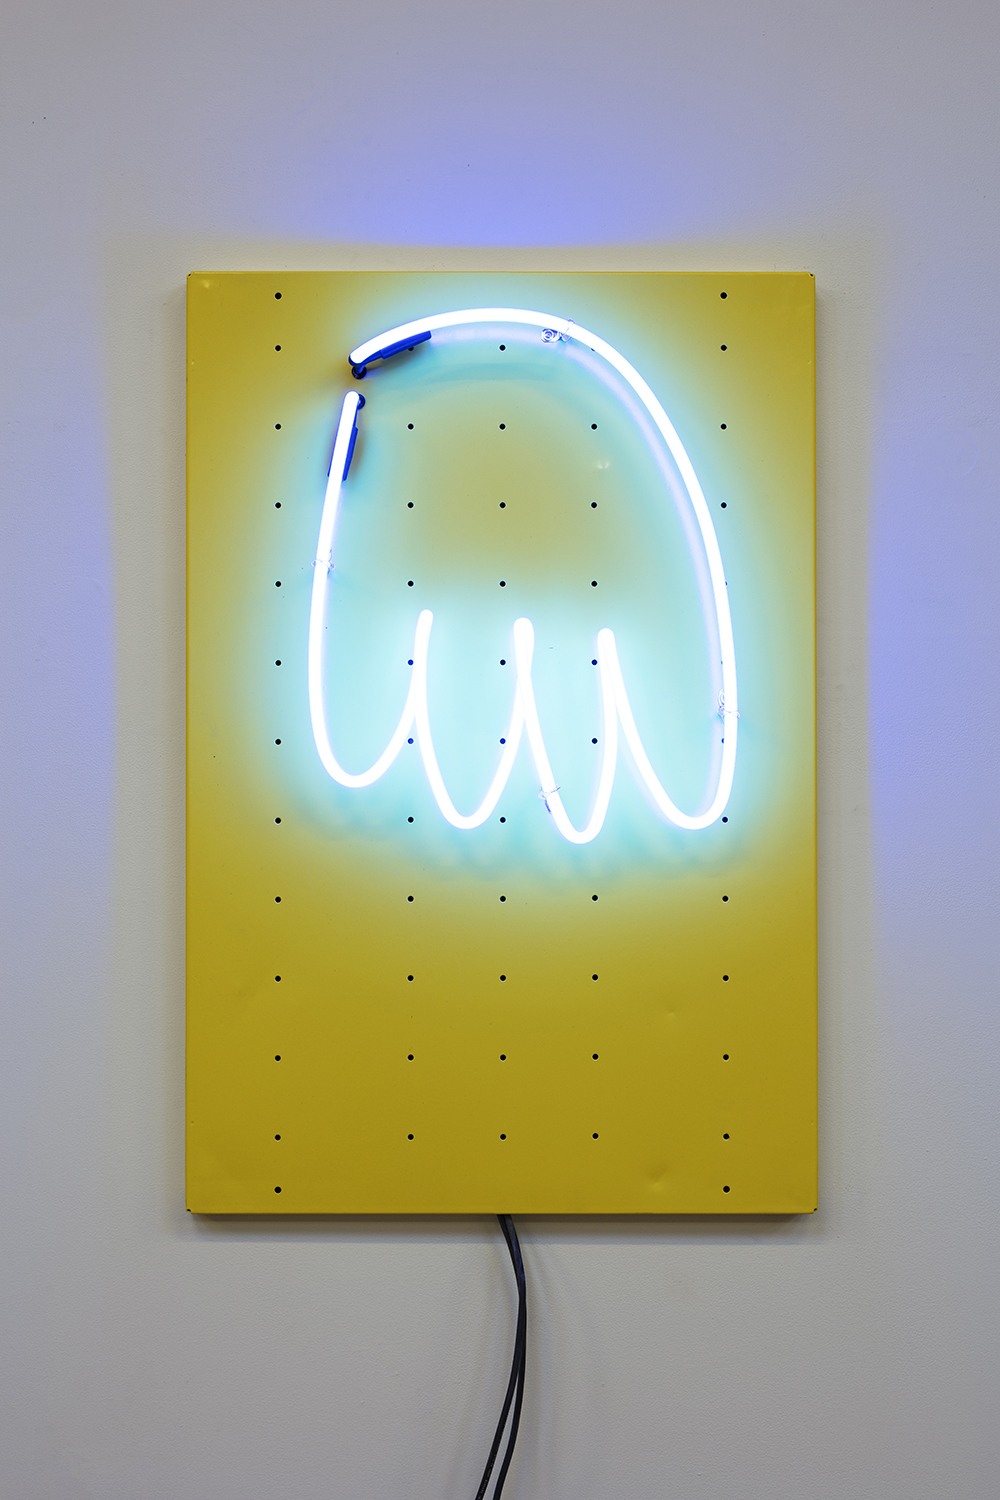 Yung Jake. <em>hair (blue)</em>, 2020. Neon on powder-coated steel, 36 x 24 inches  (91.4 x 61 cm)